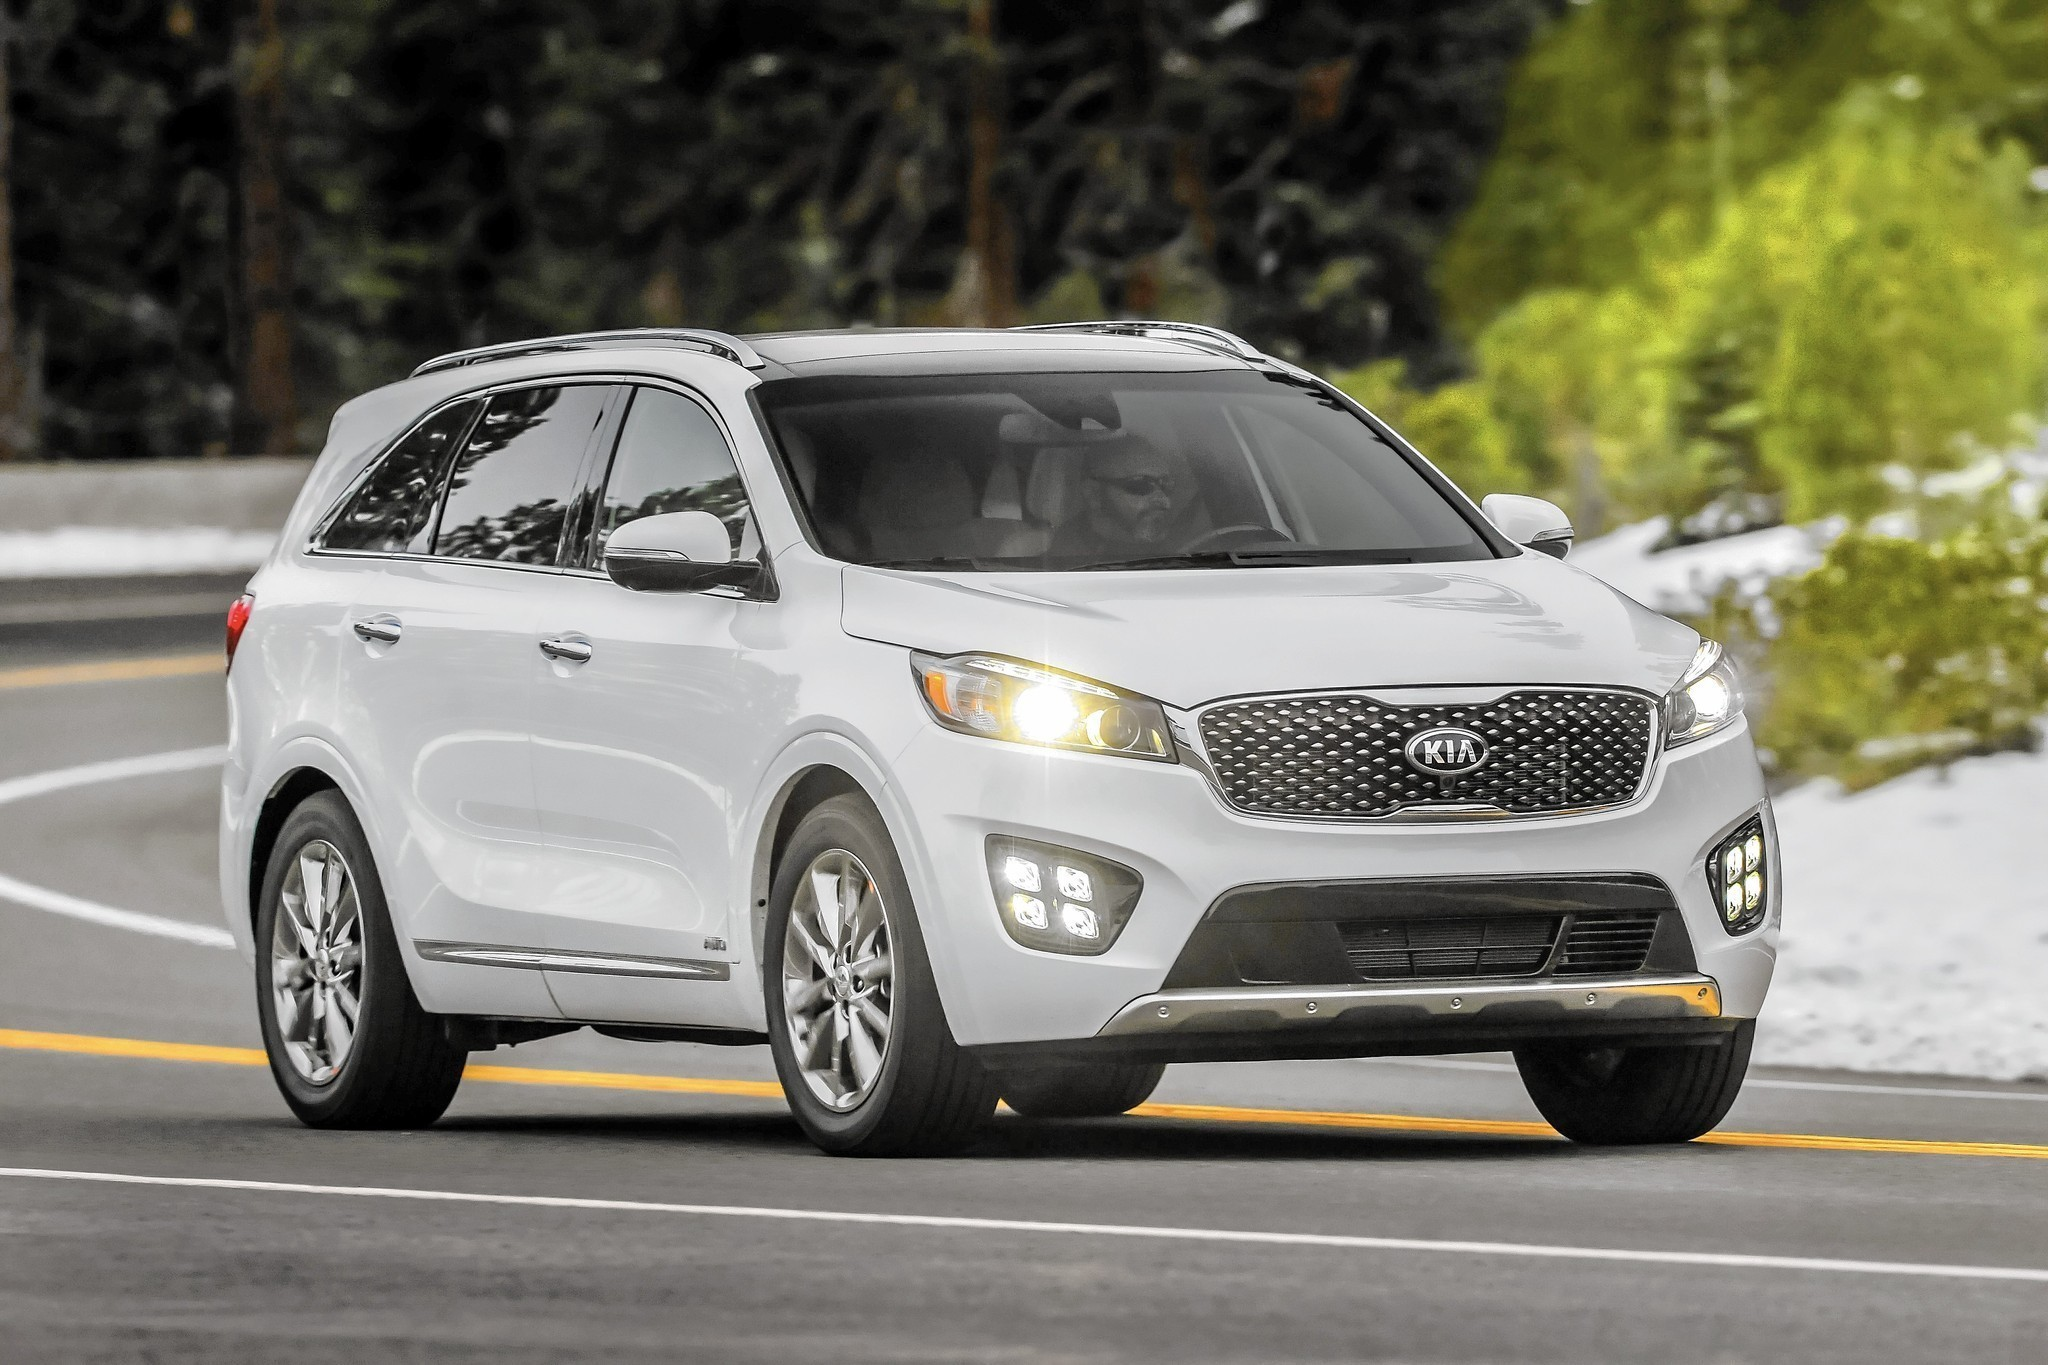 2016 kia sorento crossover keeps getting better chicago tribune. Black Bedroom Furniture Sets. Home Design Ideas